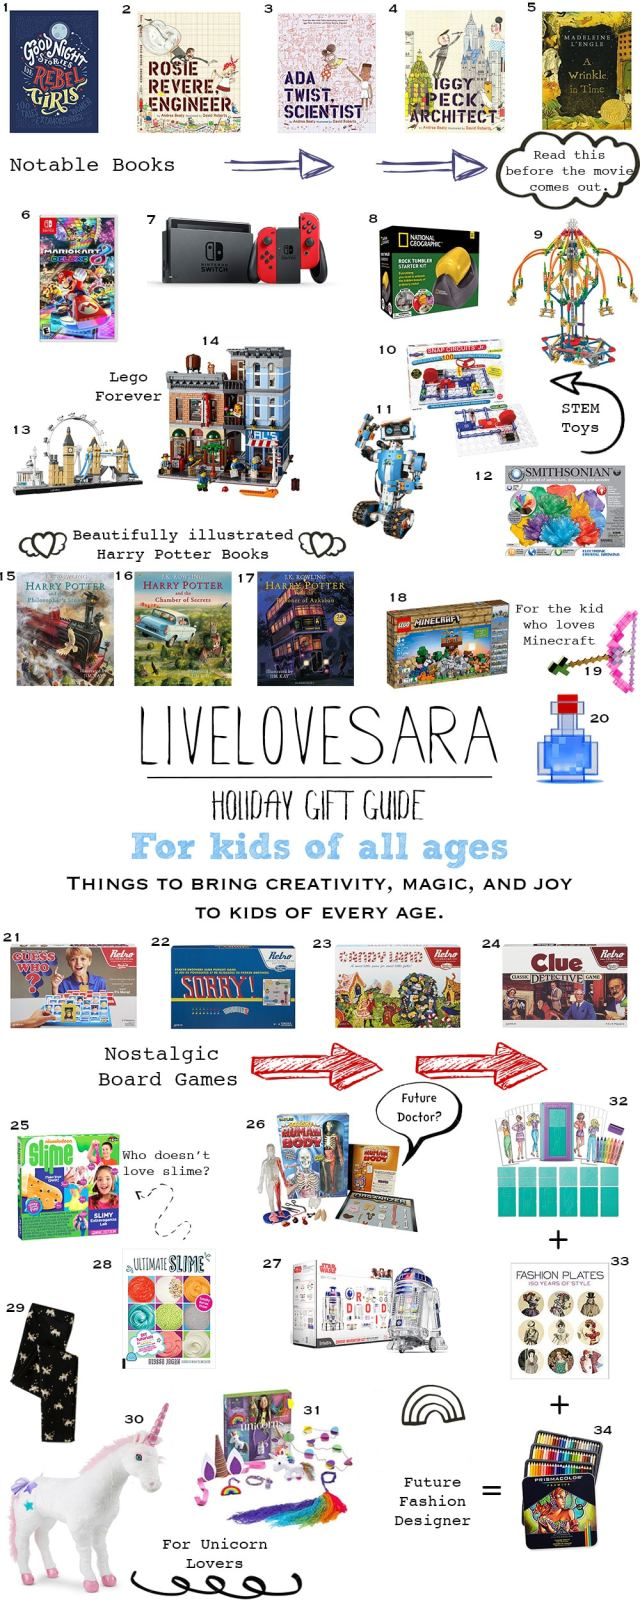 Holiday gift guide for kid 2017 #giftguide #kidsgifts #christmas2017 #livelovesara